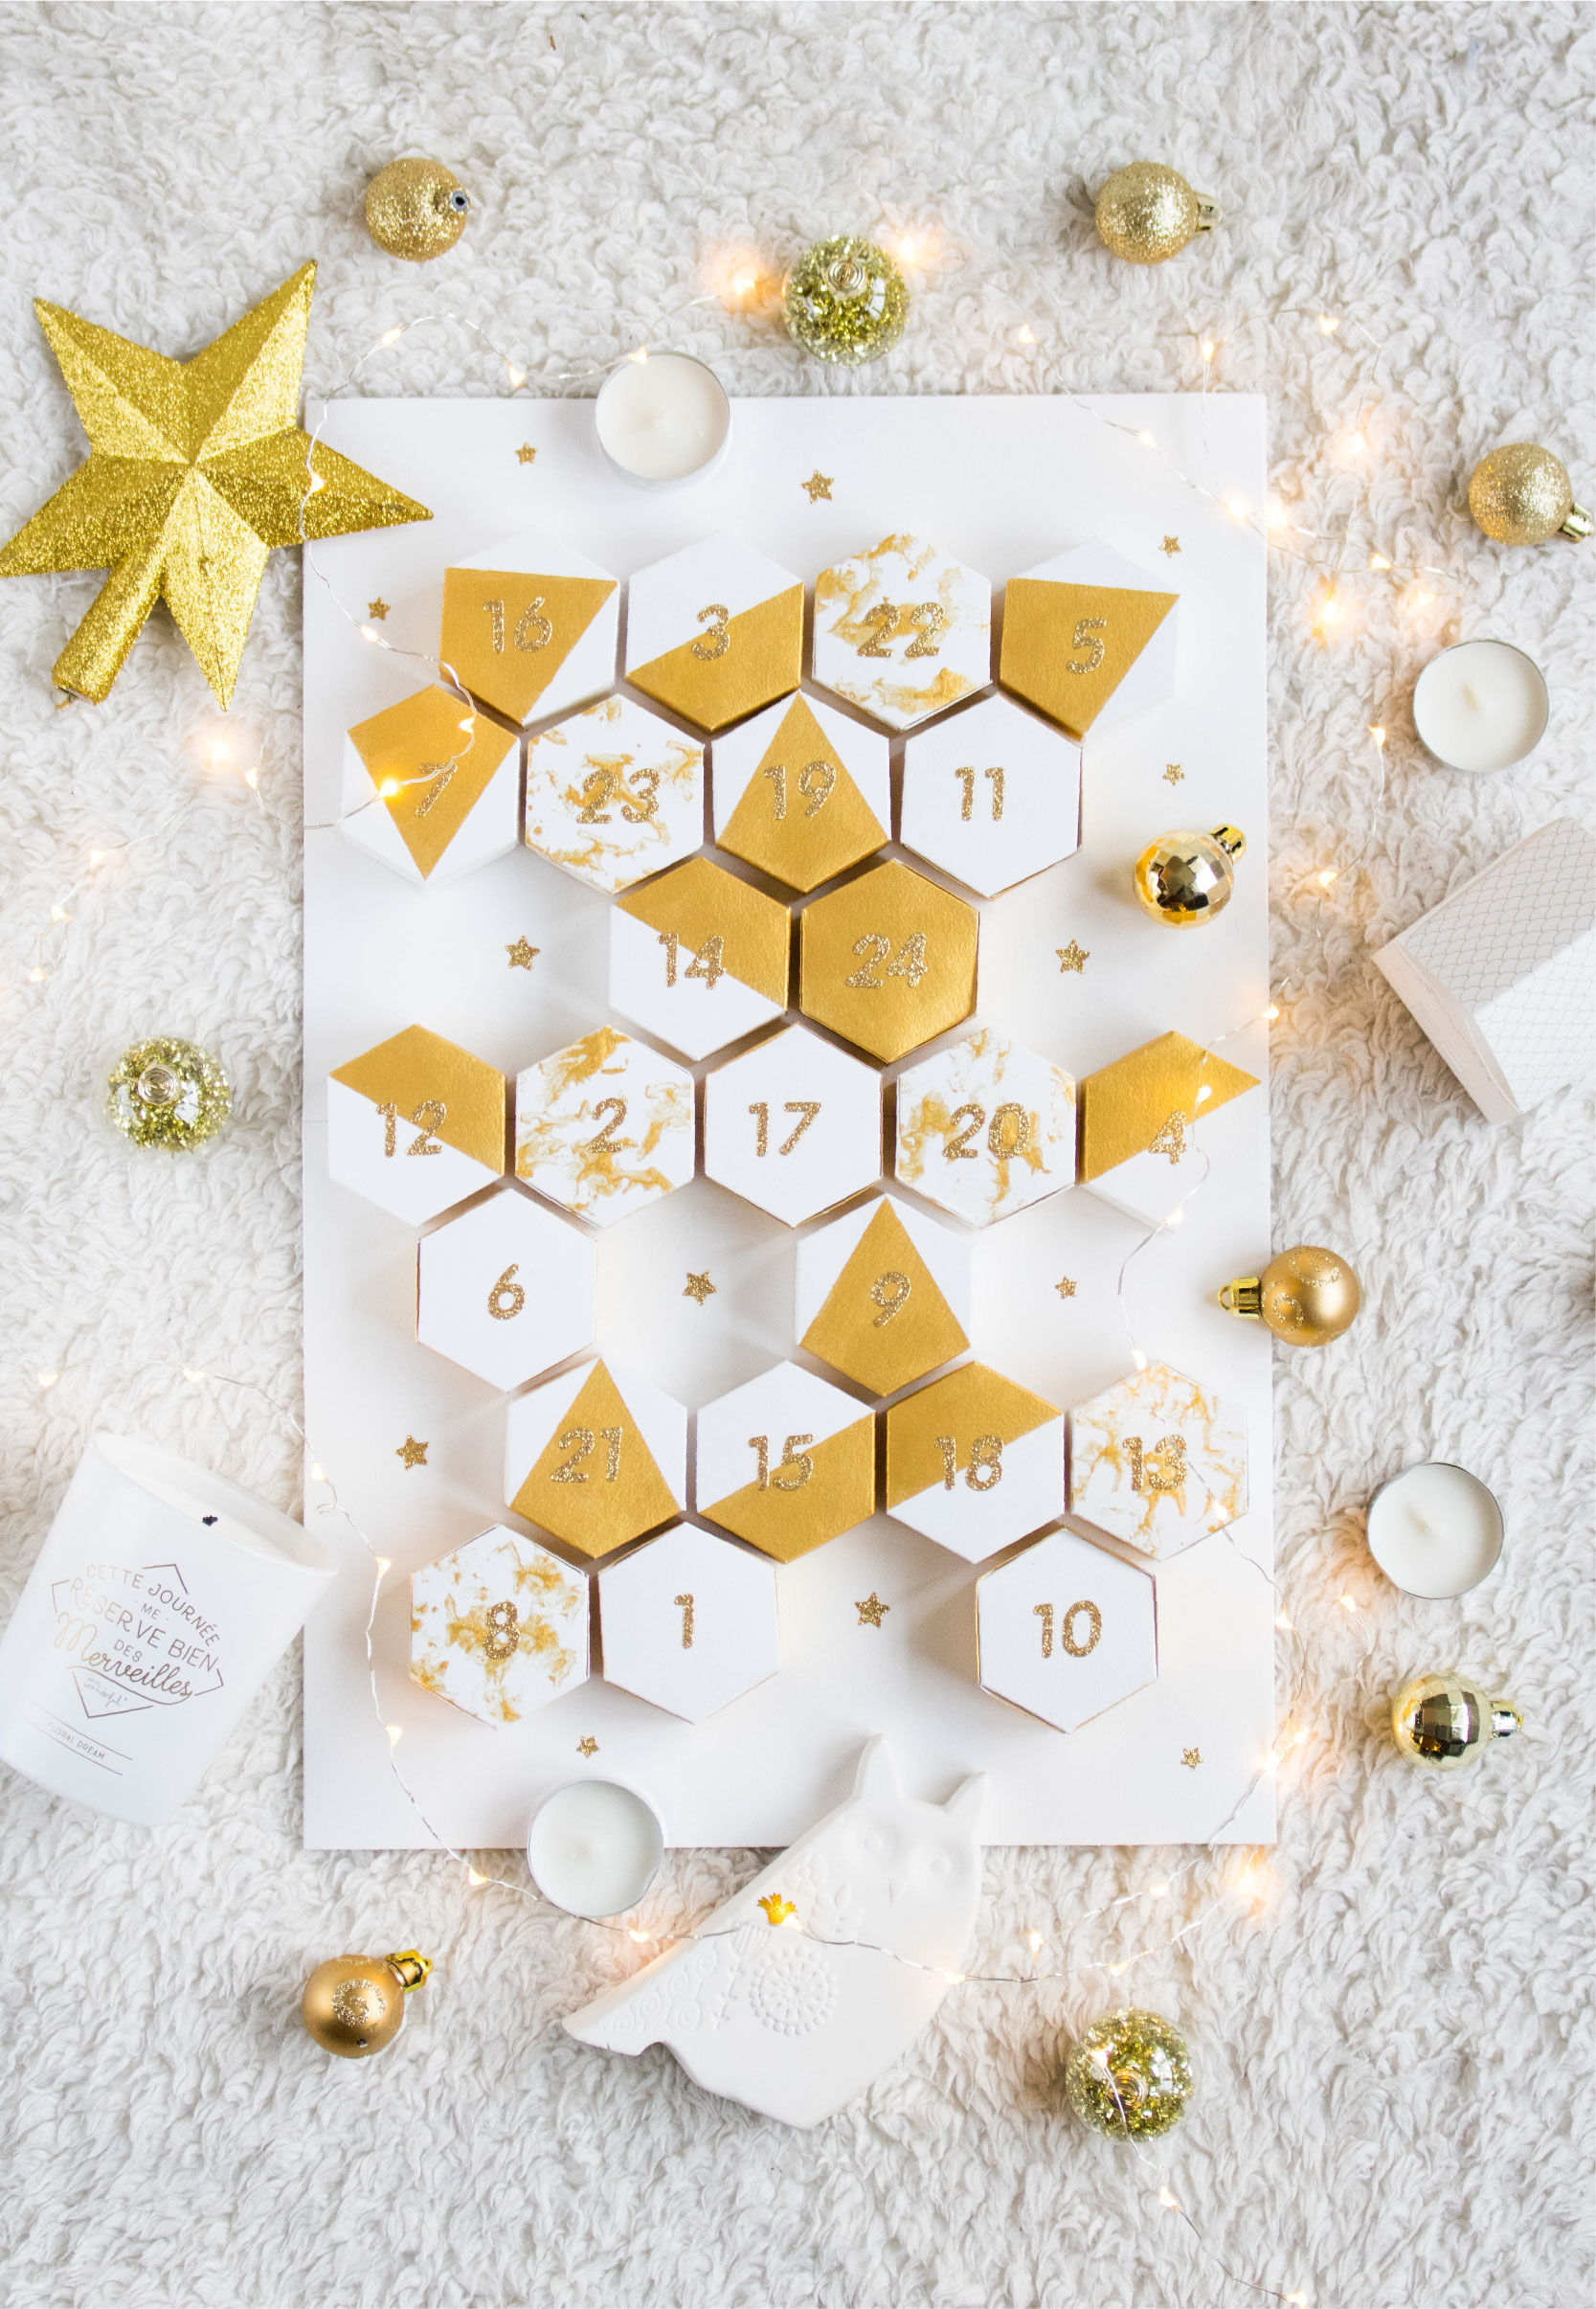 DIY CALENDRIER DE L'AVENT GRAPHIQUE & GOLD